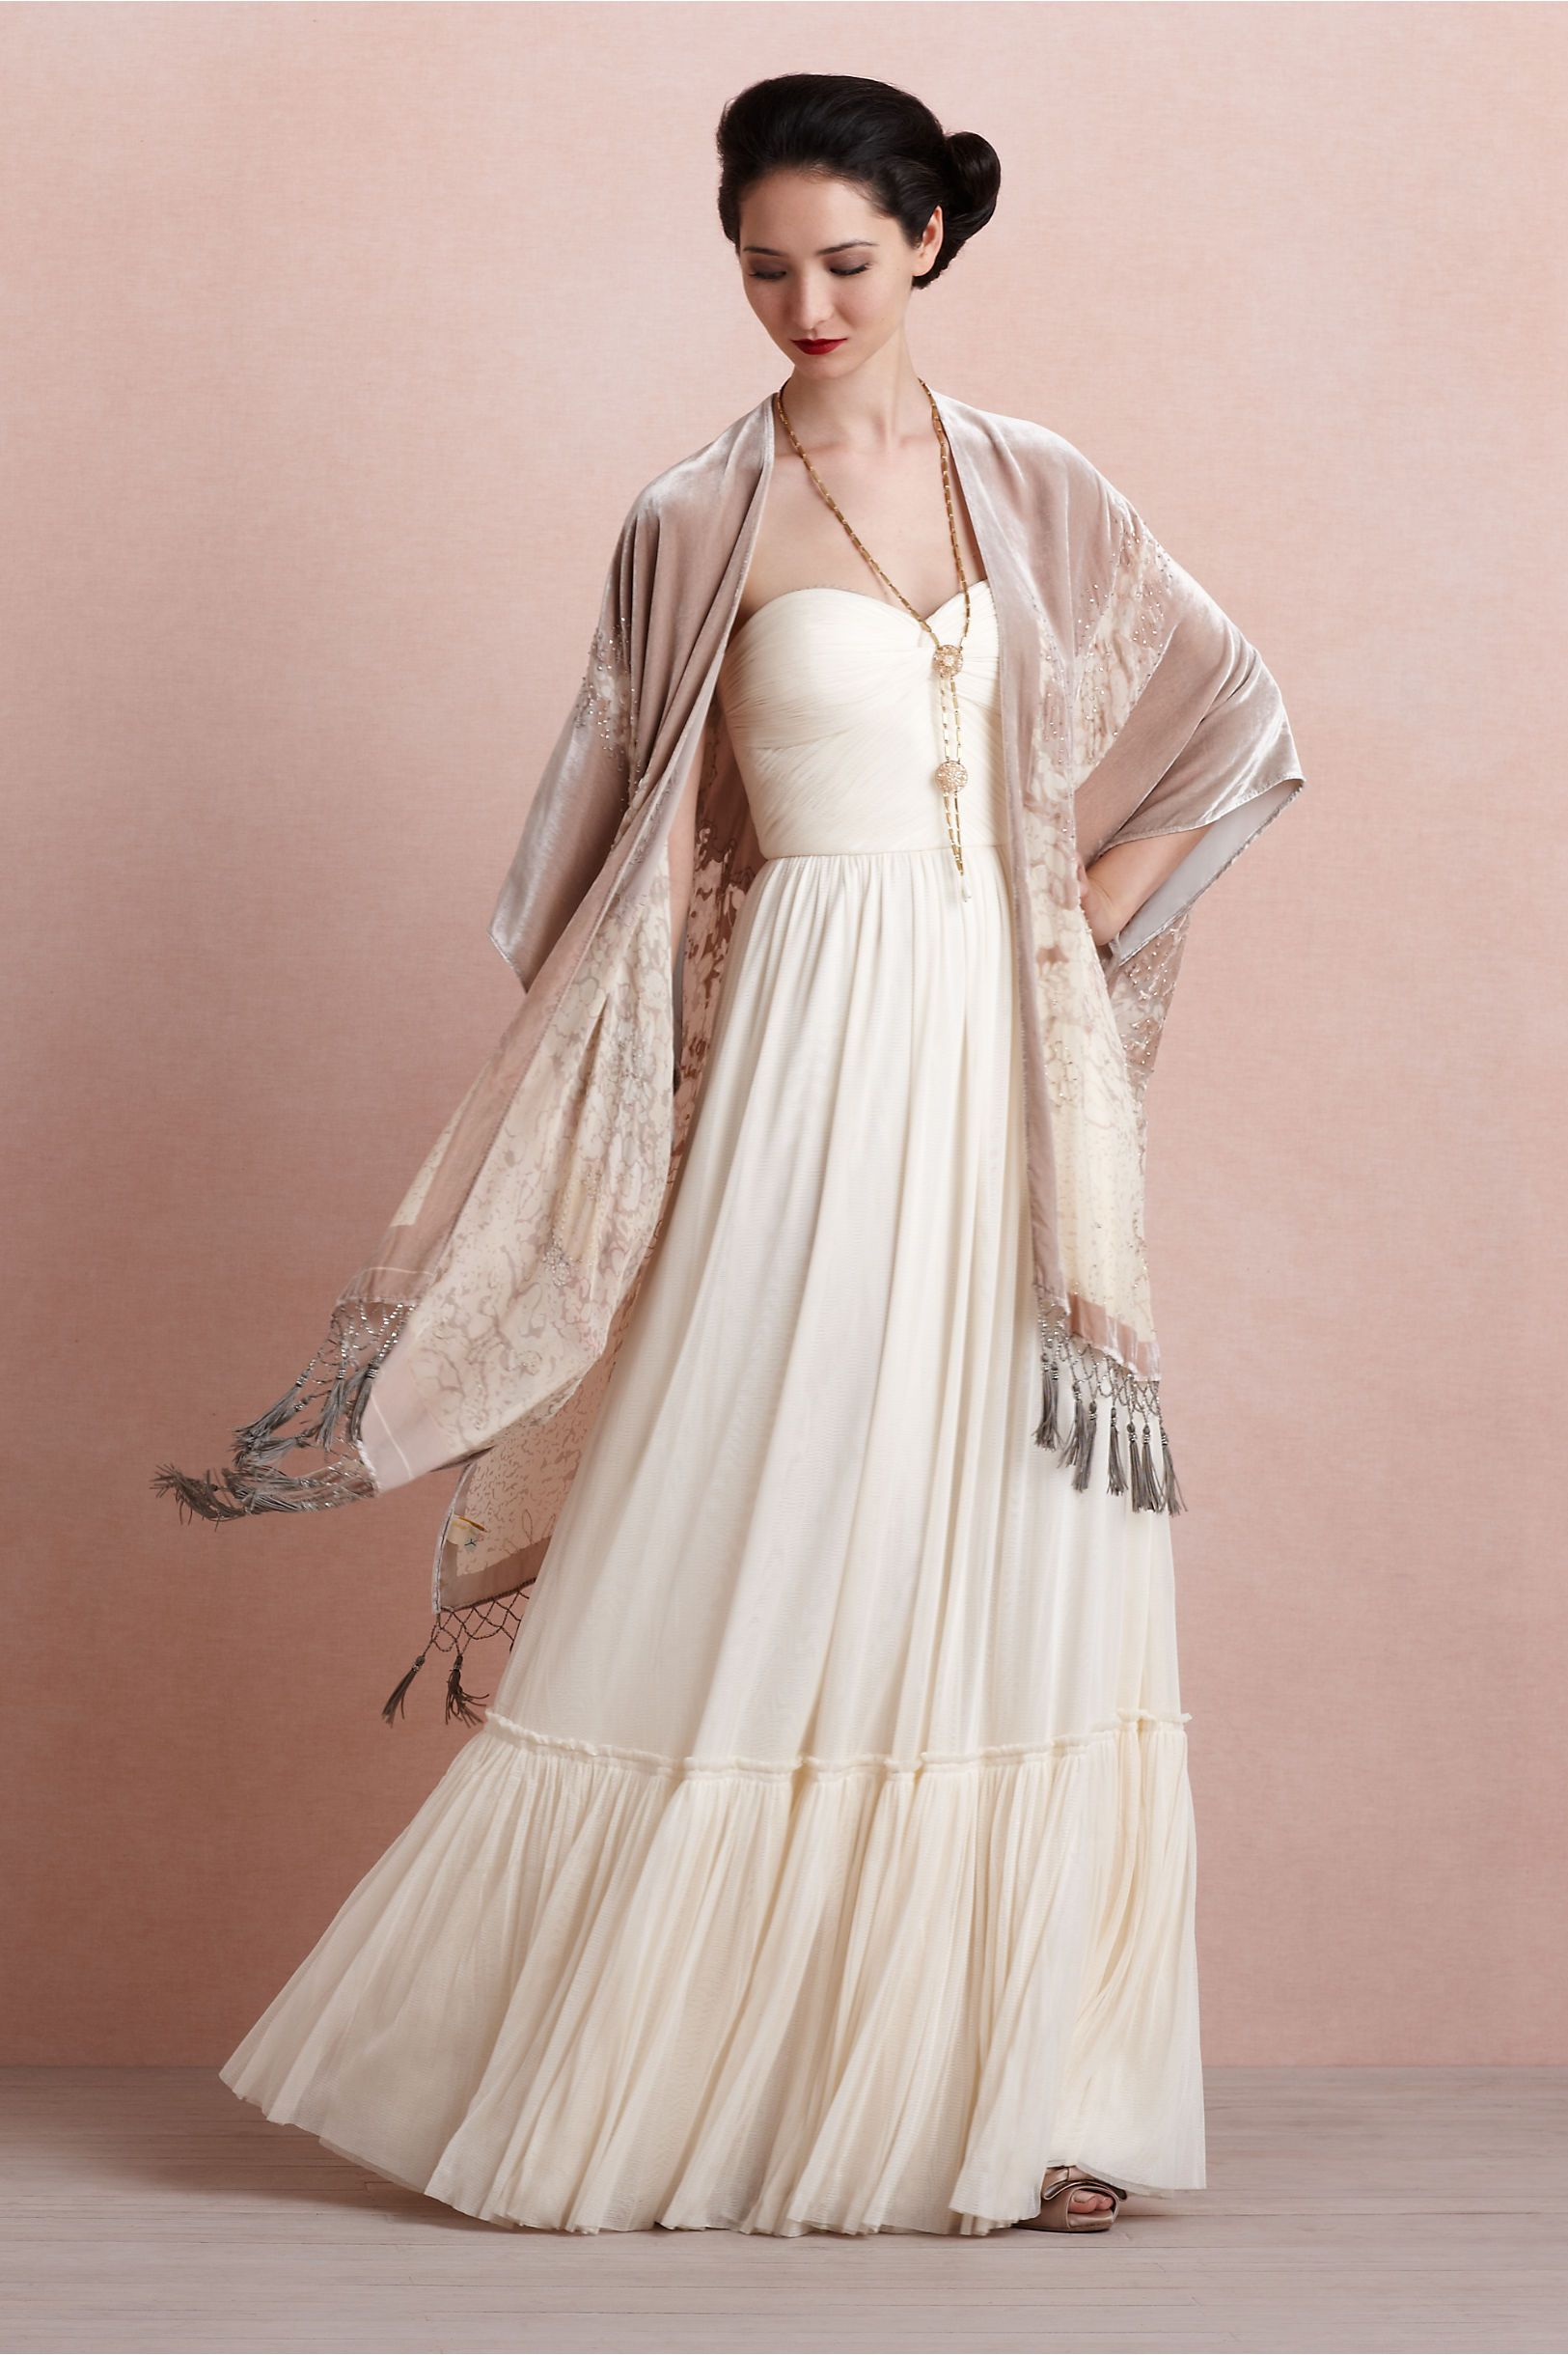 Wedding dress wrap  Enfumé Wrap in The Bride Cover Ups at BHLDN  Vintage Inspired